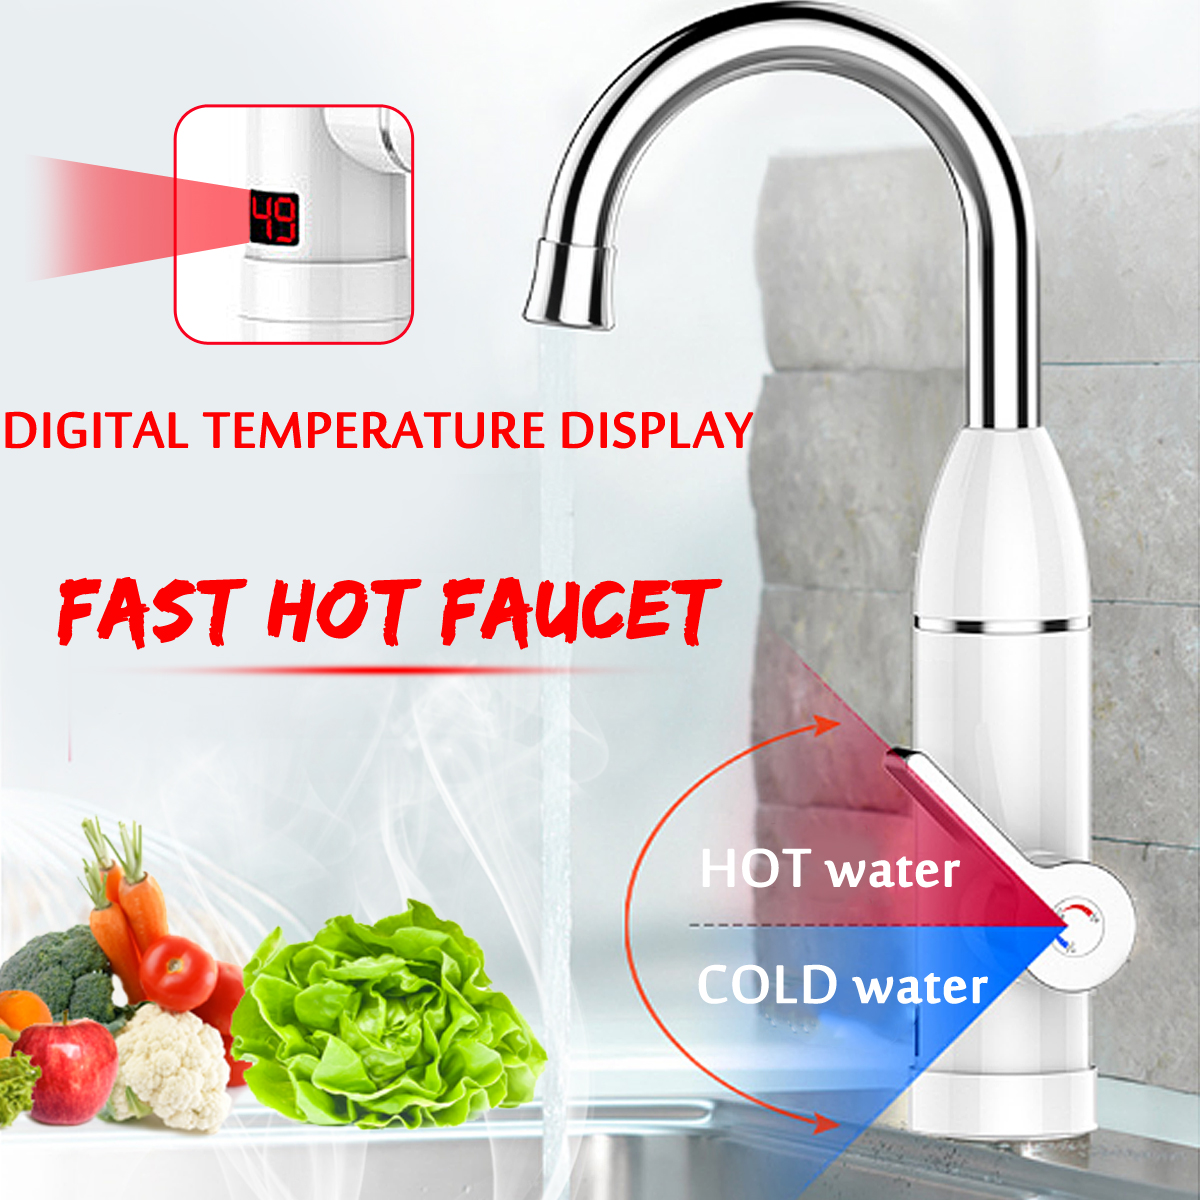 220V 3000W Instant Electric Tankless Cold/Hot Water Heater Shower System Tap Faucet Digital Display Mixer Kitchen Bathroom Tap220V 3000W Instant Electric Tankless Cold/Hot Water Heater Shower System Tap Faucet Digital Display Mixer Kitchen Bathroom Tap